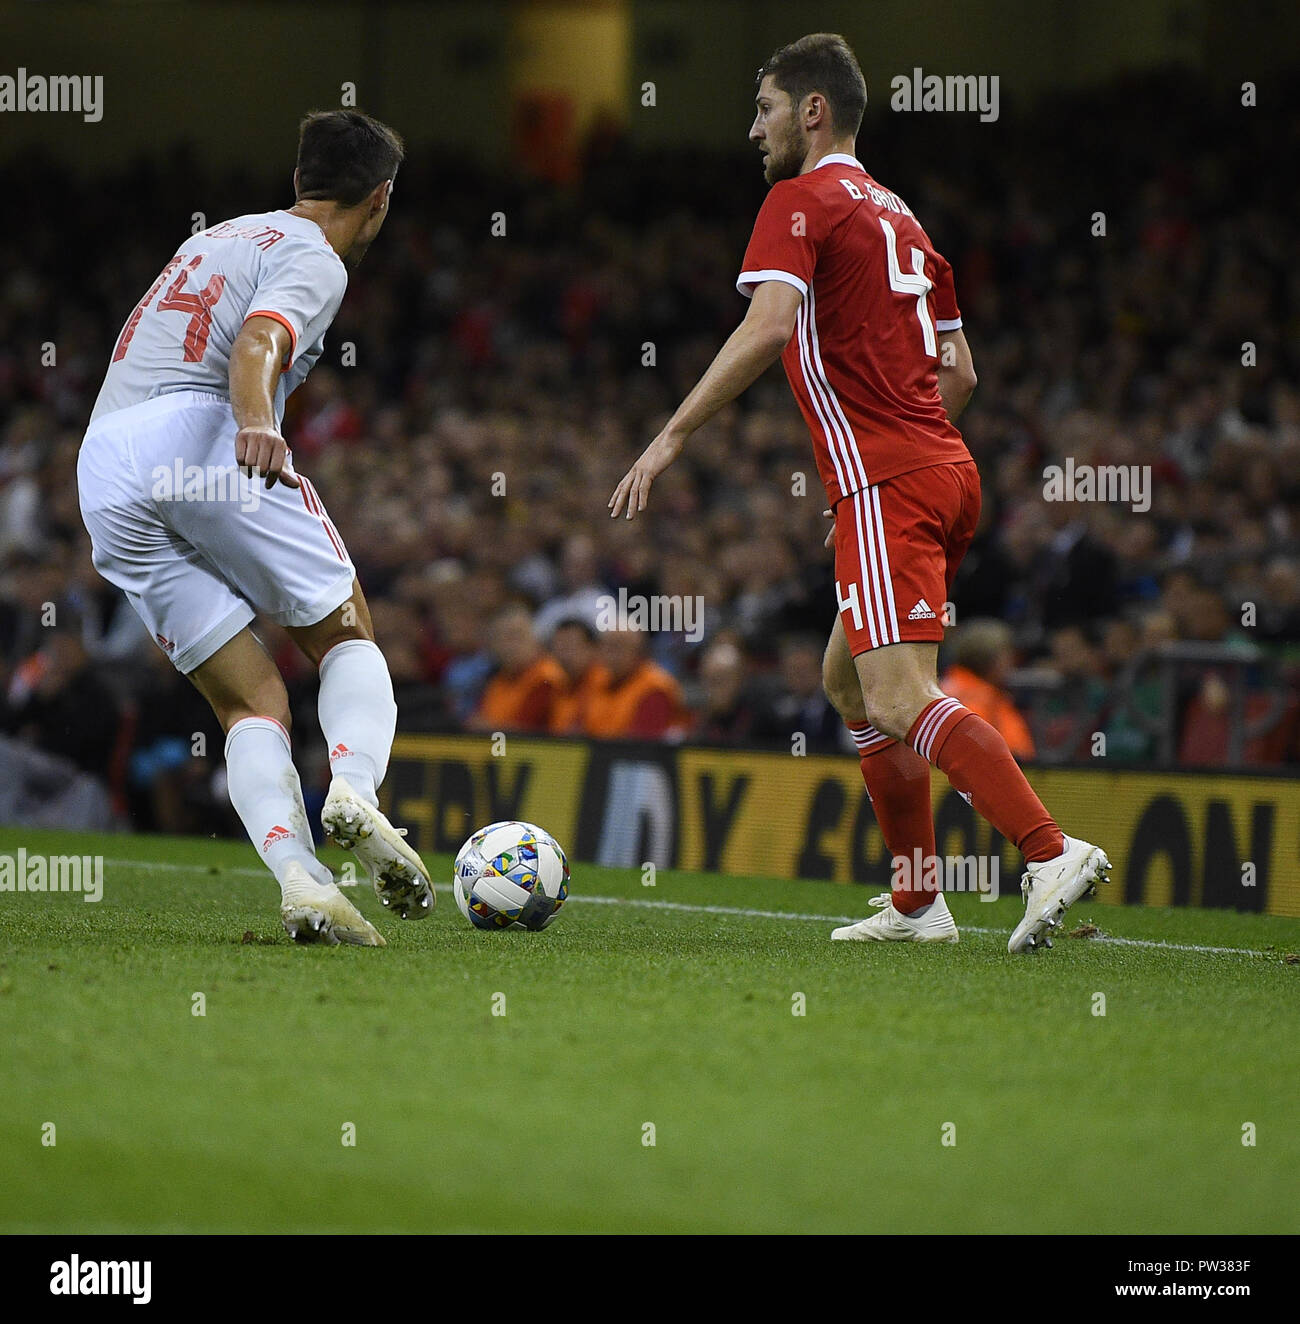 L R Cesar Stock Photos Images Alamy Rider Sport Boxer 383 Azpillicueta Ben Davies In Action During The Wales V Spain Friendly Football At